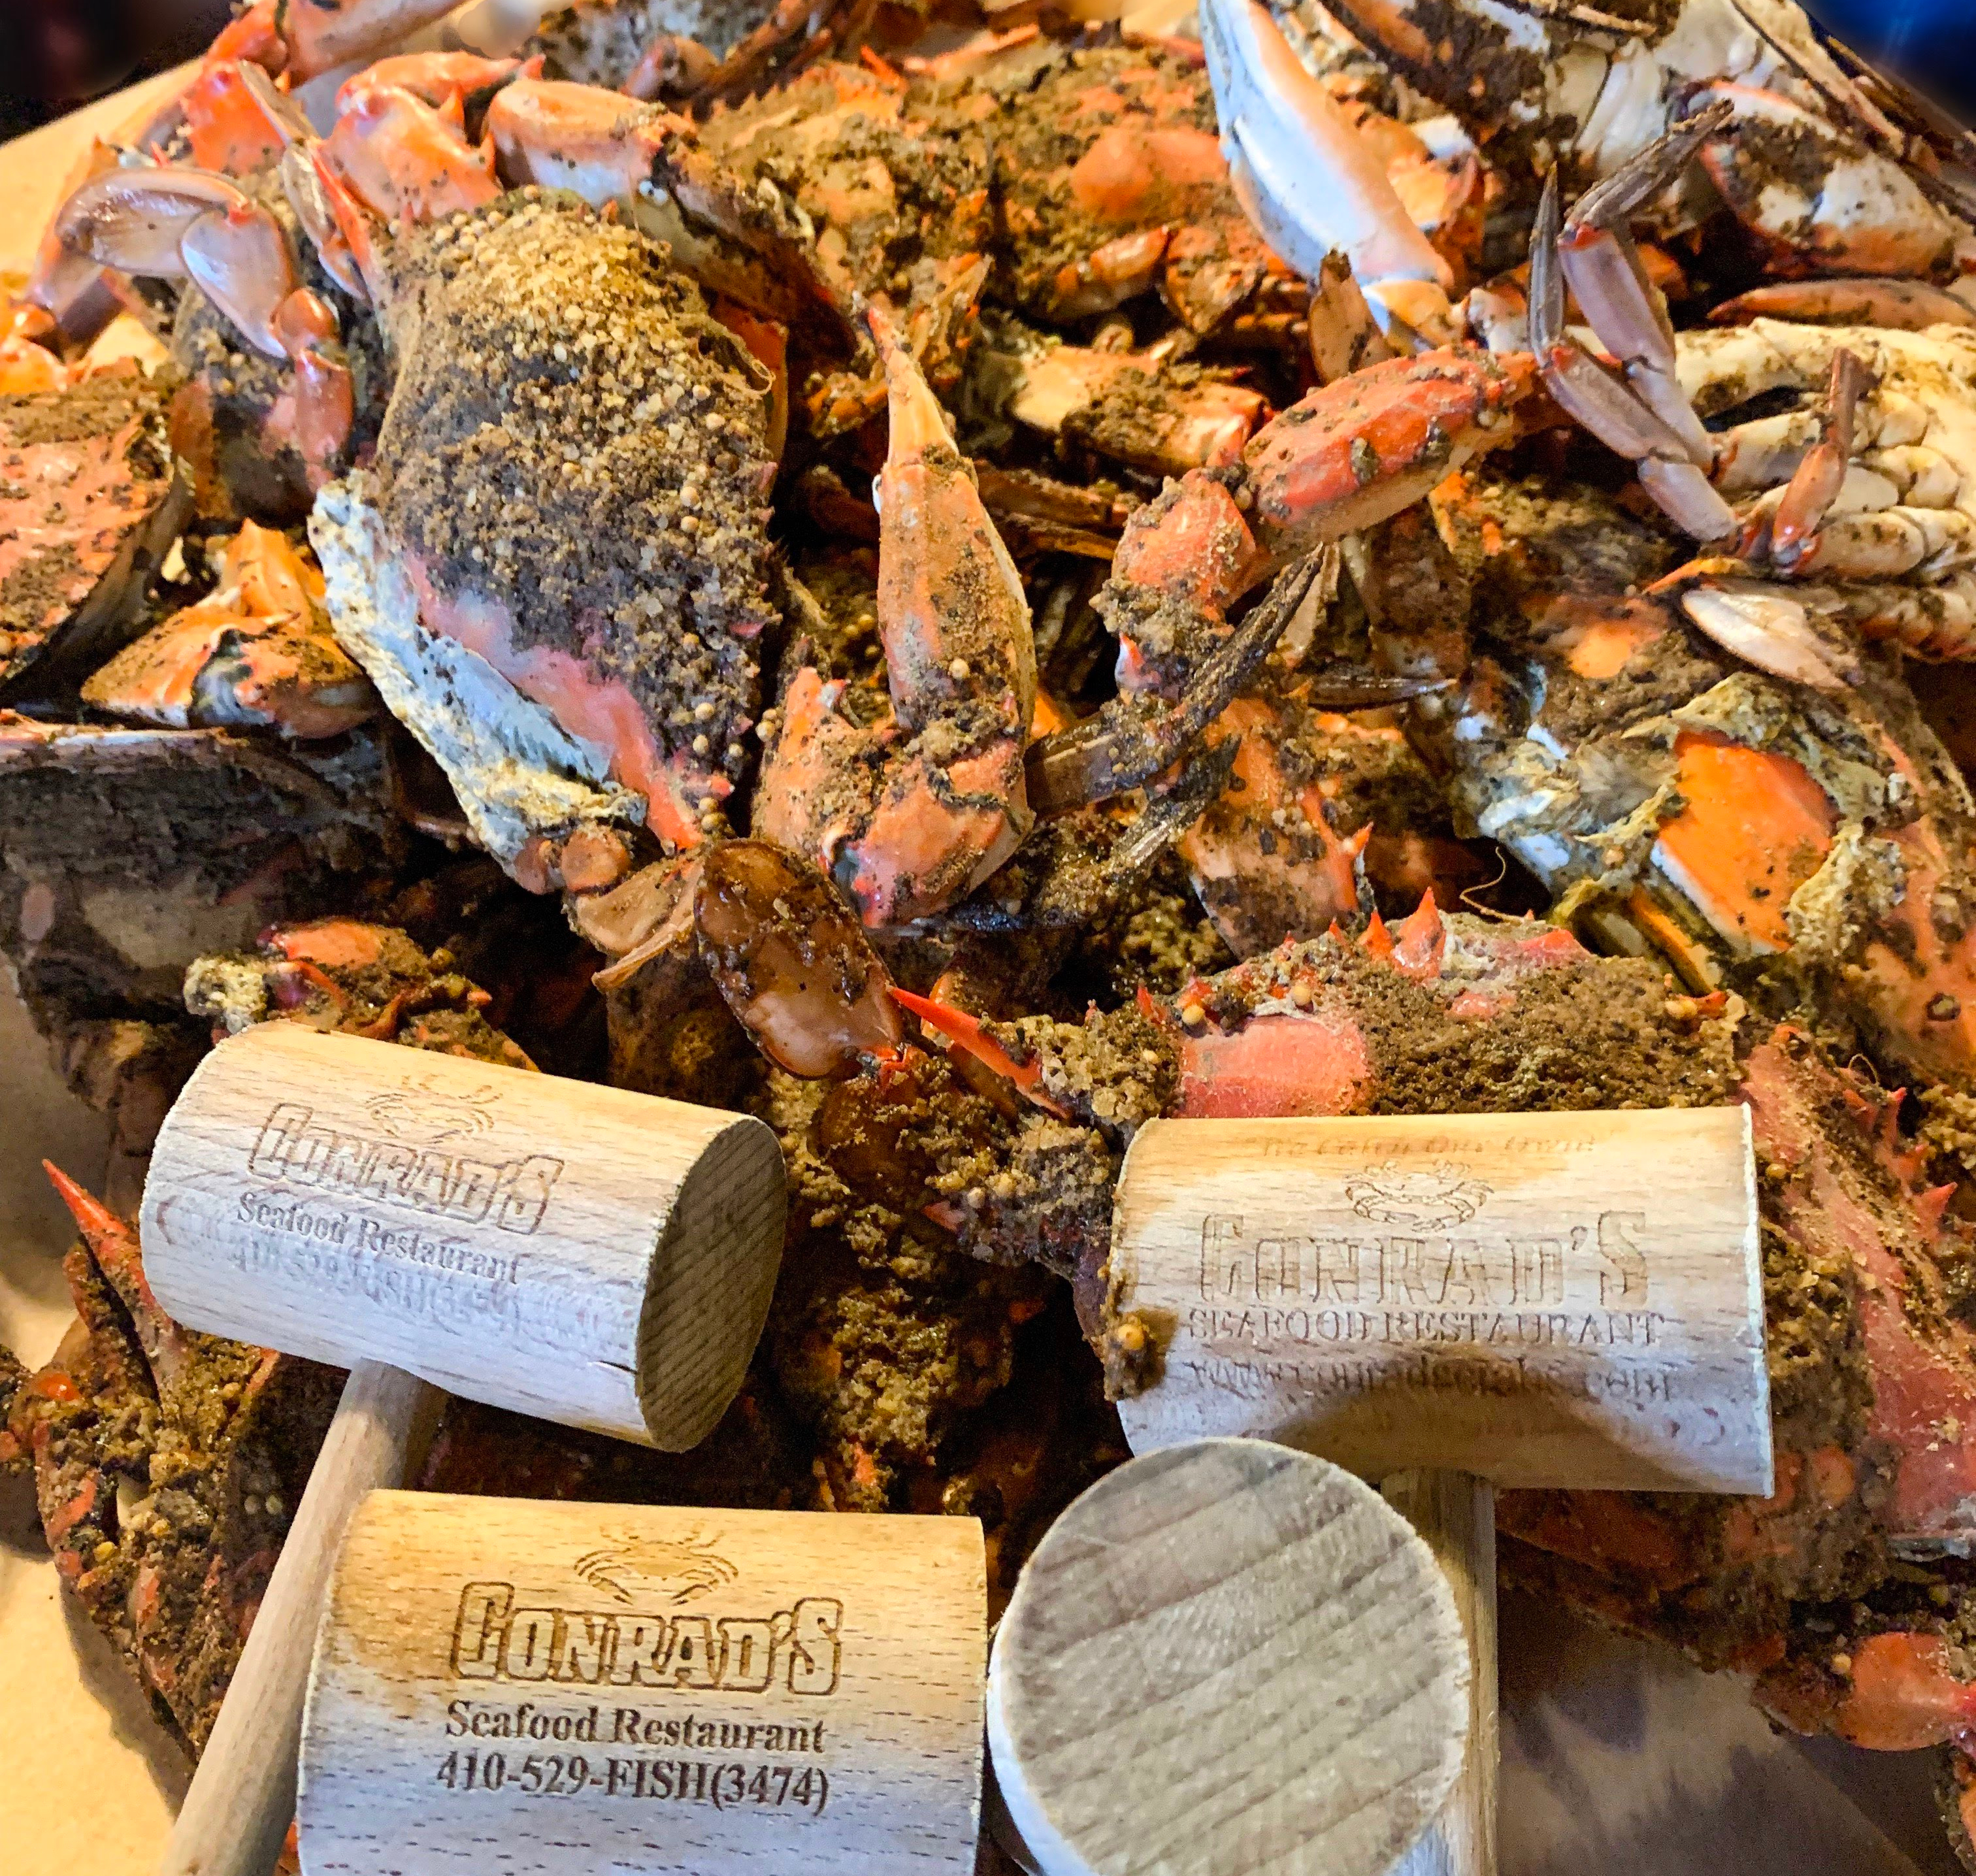 Maryland steamed crabs in a pile and crab mallets in front.